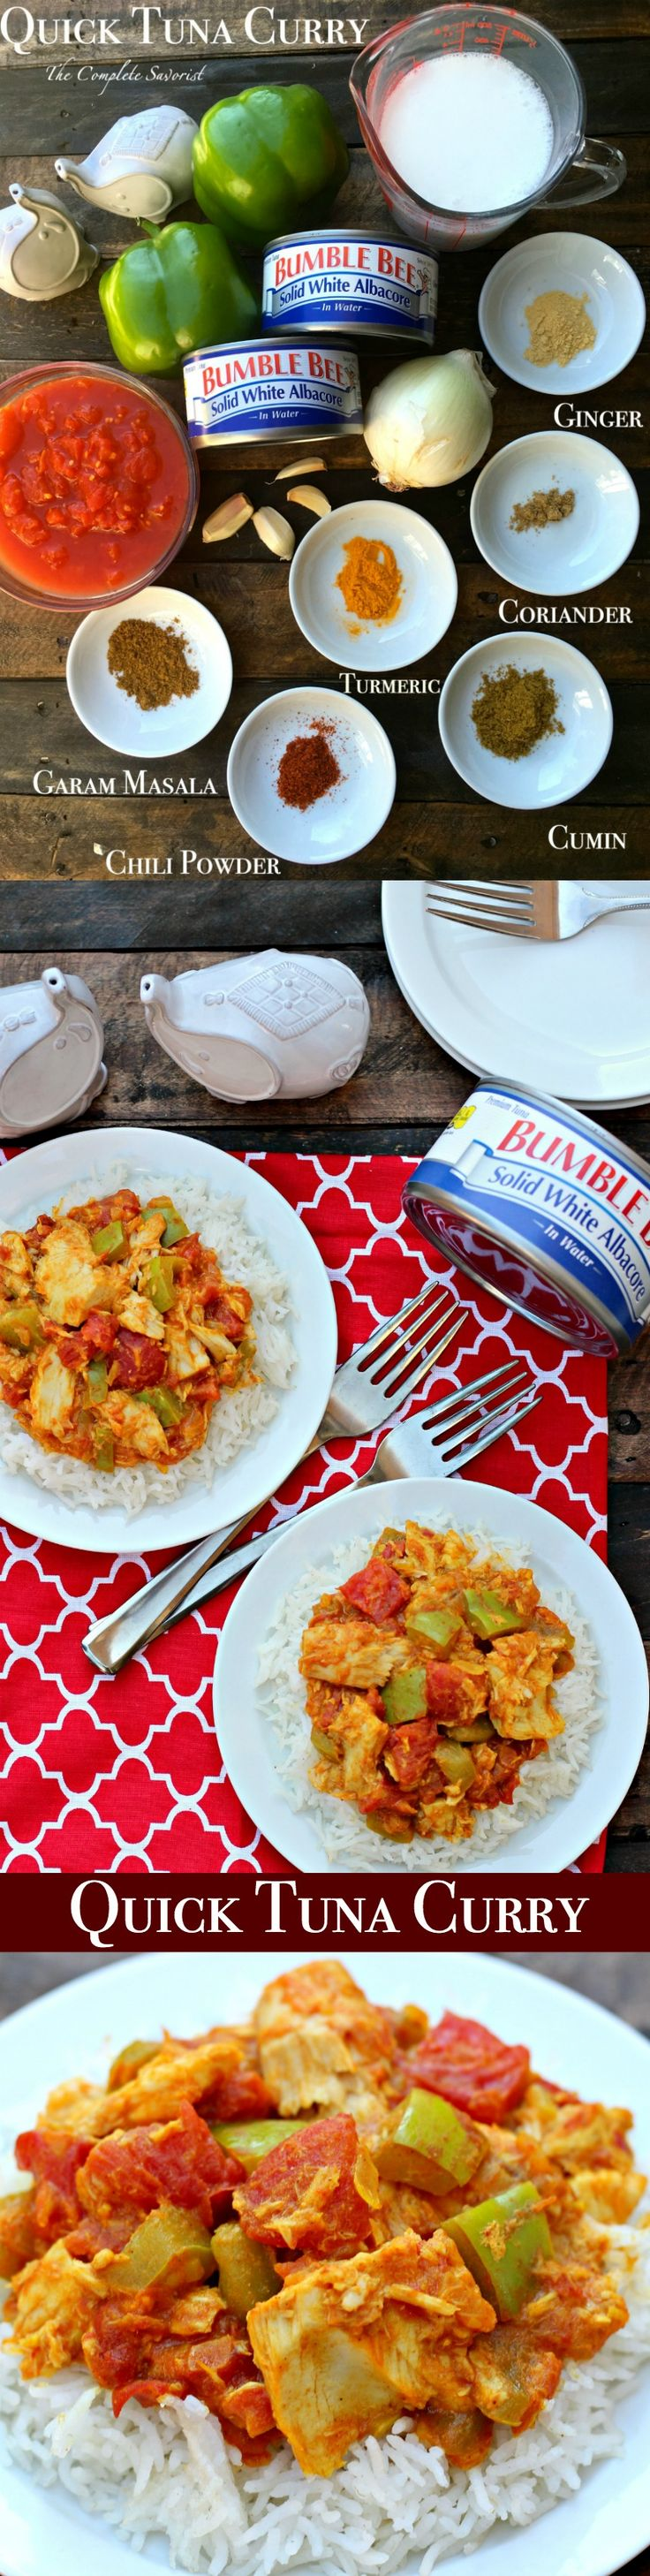 Quick Tuna Curry ~ Traditional Indian curry of aromatic spices, onions, peppers, and tomatoes, with solid white albacore, making this no boring tuna dish ~ The Complete Savorist #OnlyAlbacore #CG ad @(Healthy Recipes Tuna)